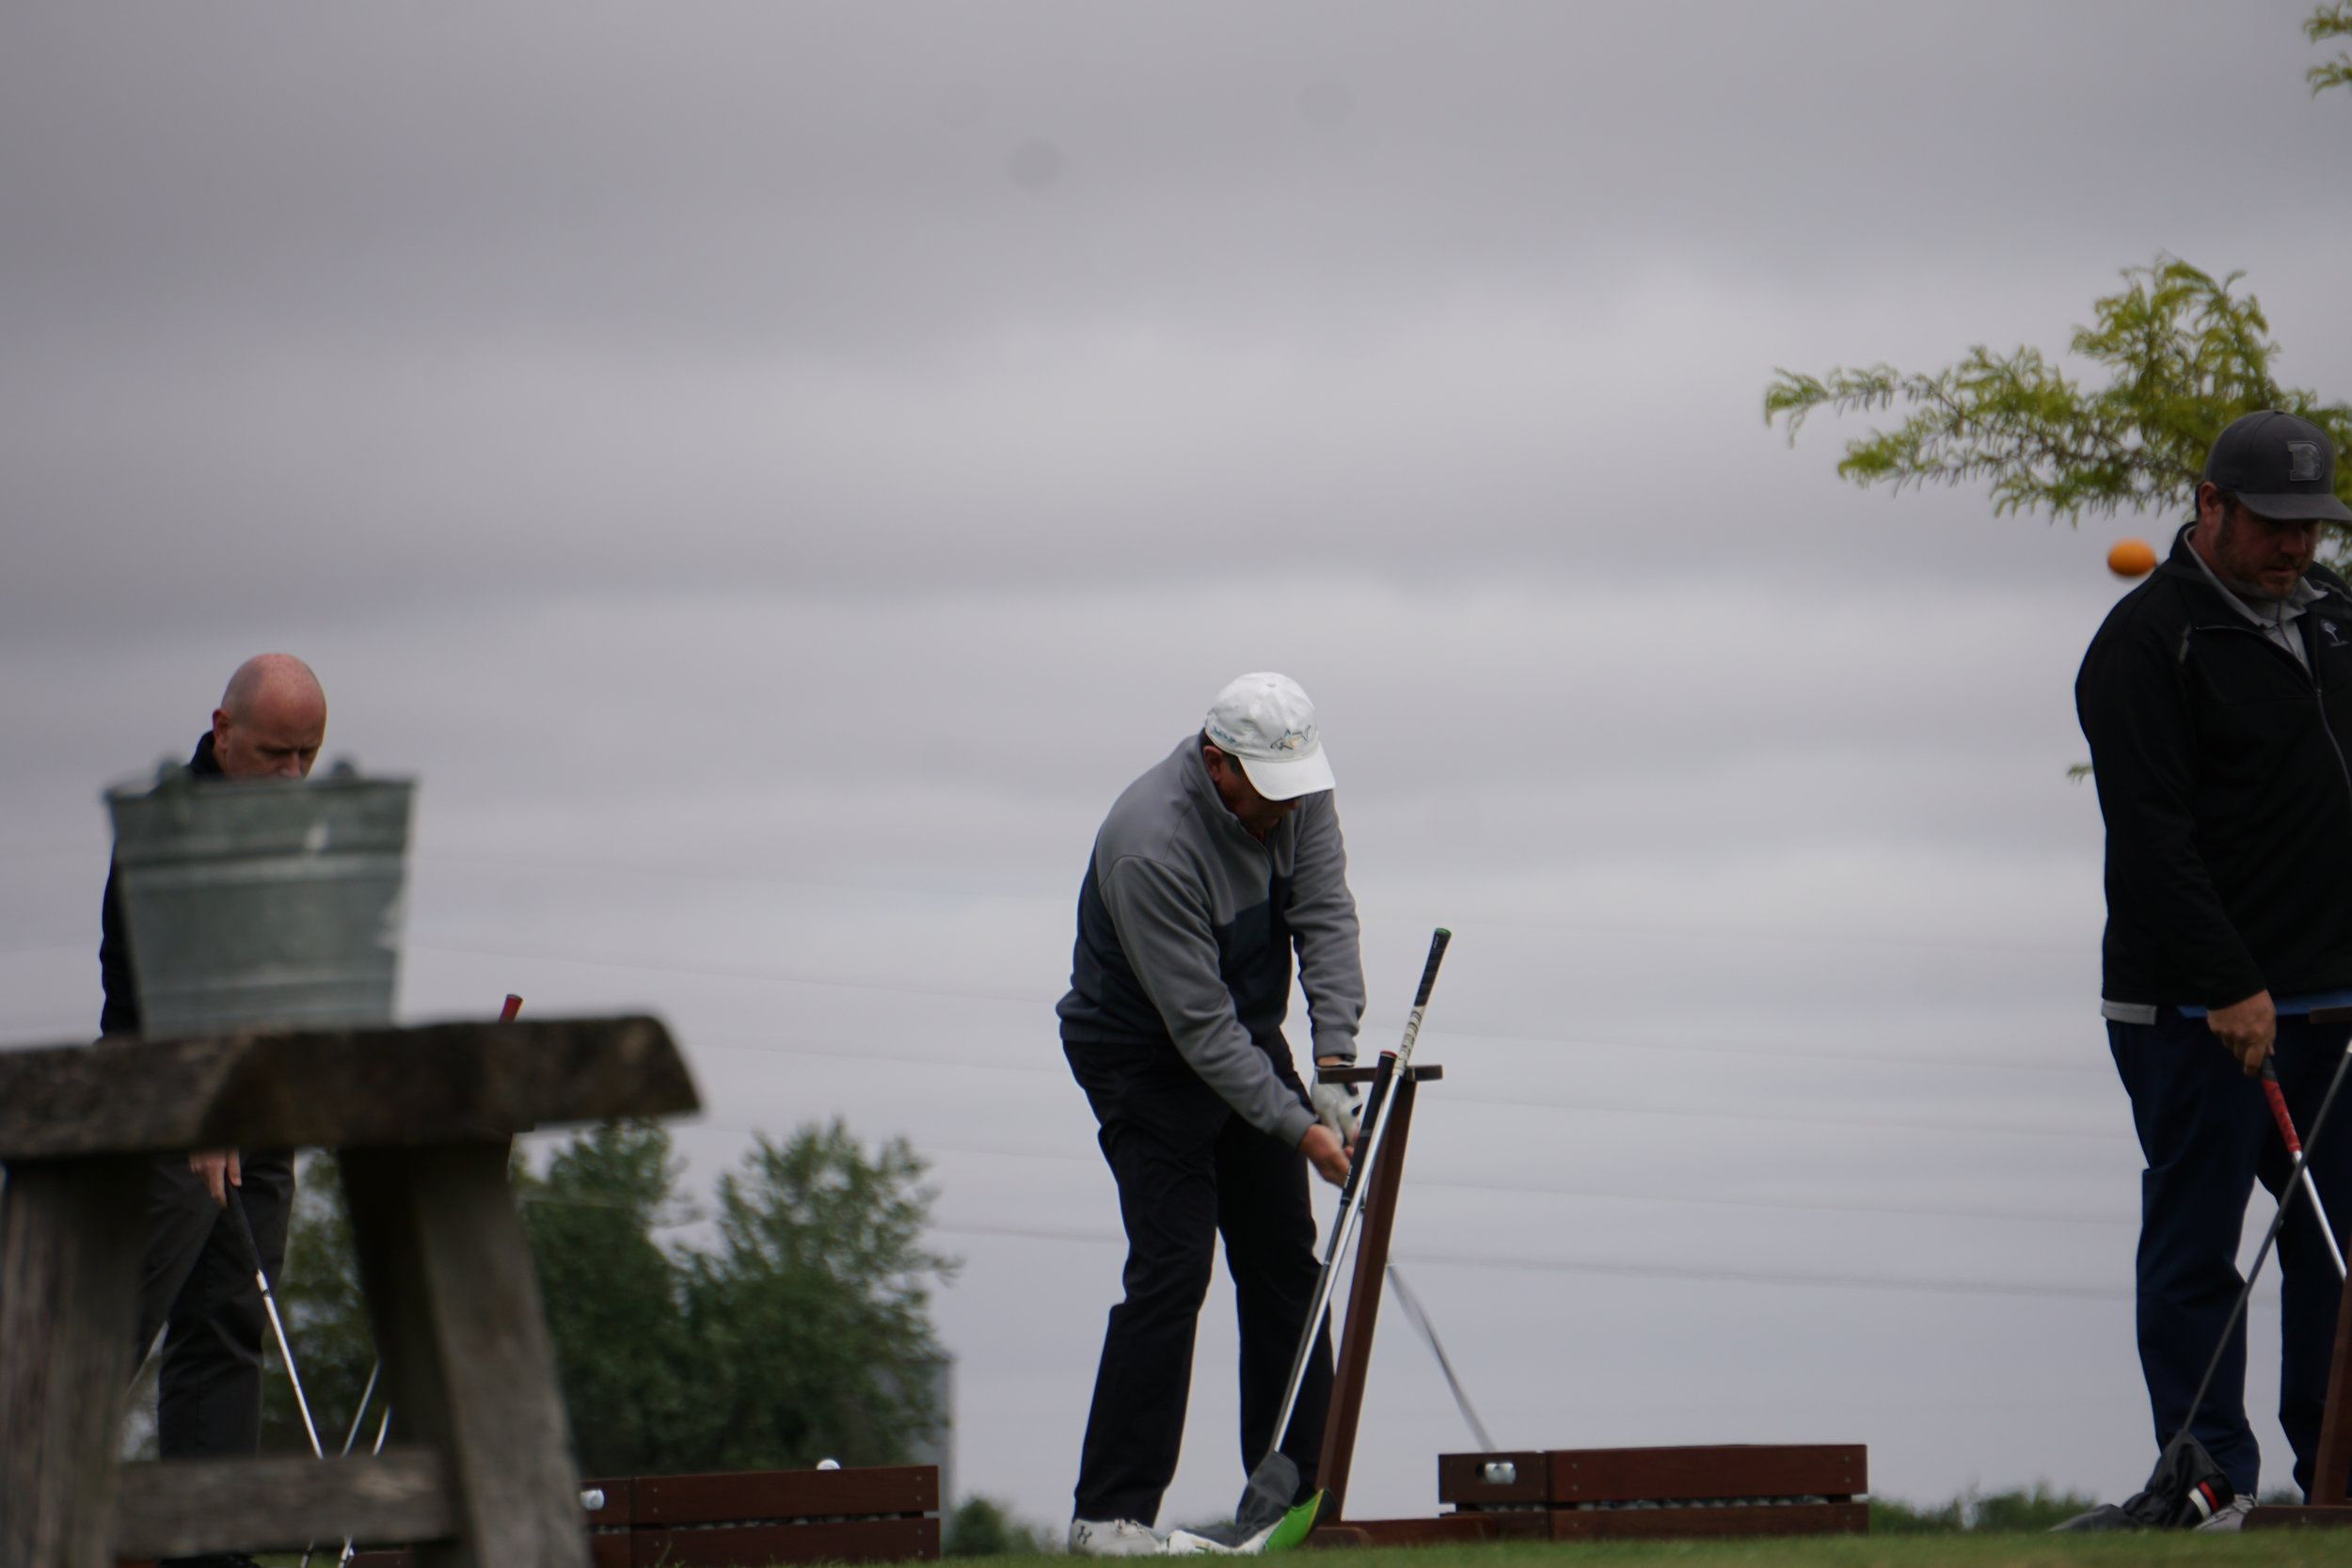 5.20.19_HuskerCatholicGolf_a6300_5.JPG